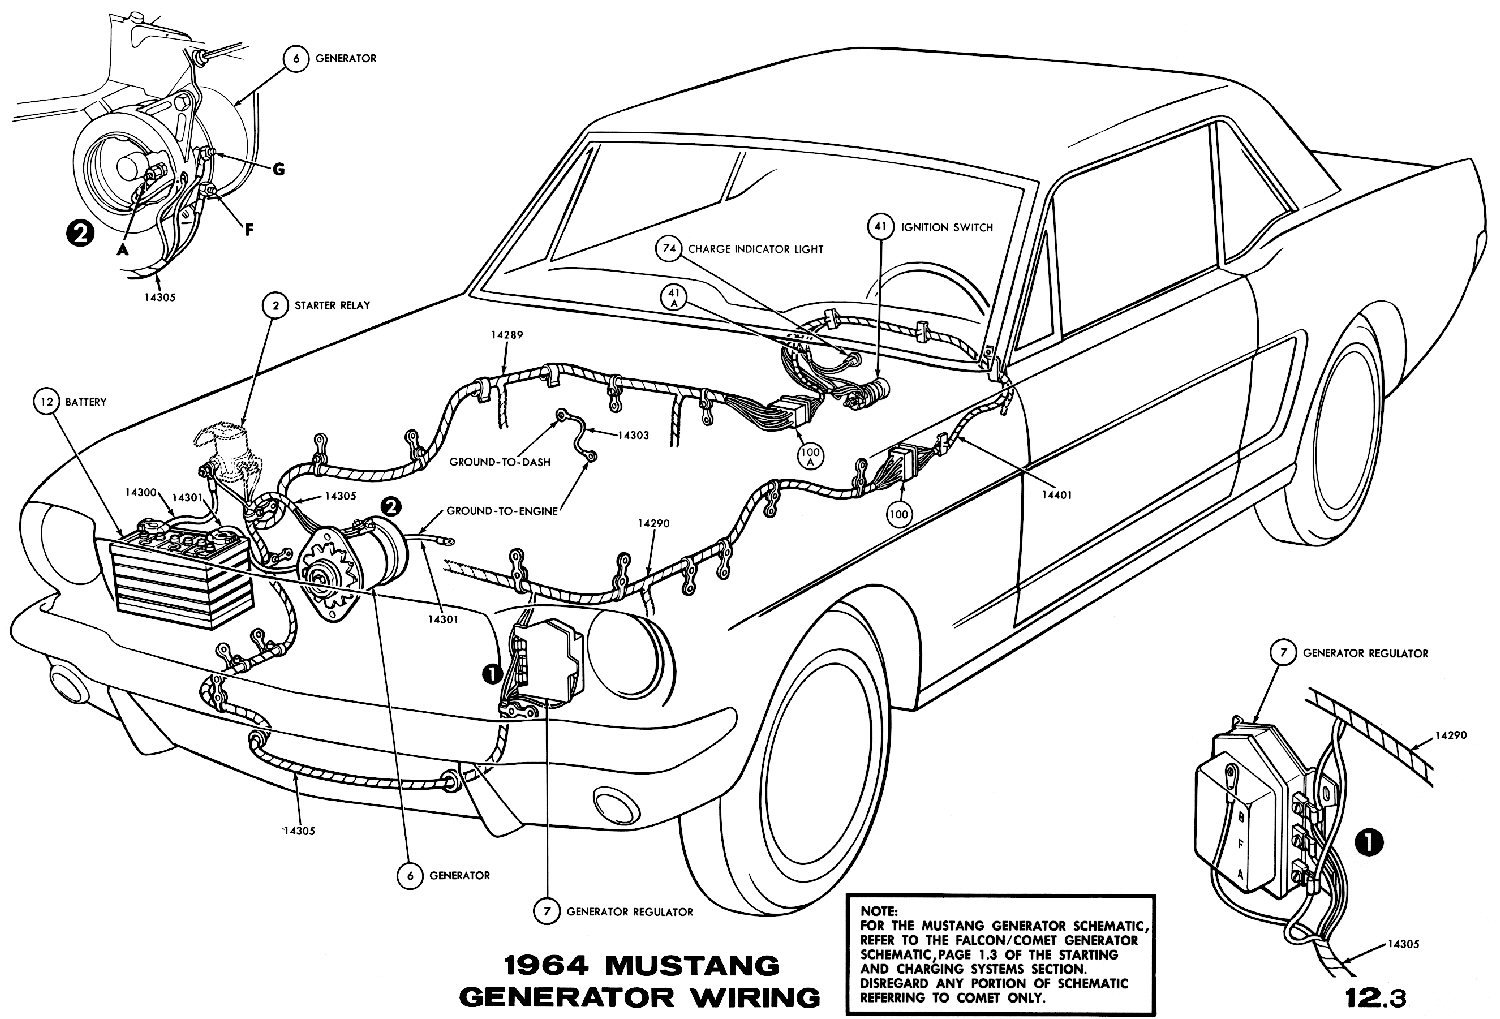 1964f 1964 mustang wiring diagrams average joe restoration 1966 mustang wiring diagrams at webbmarketing.co